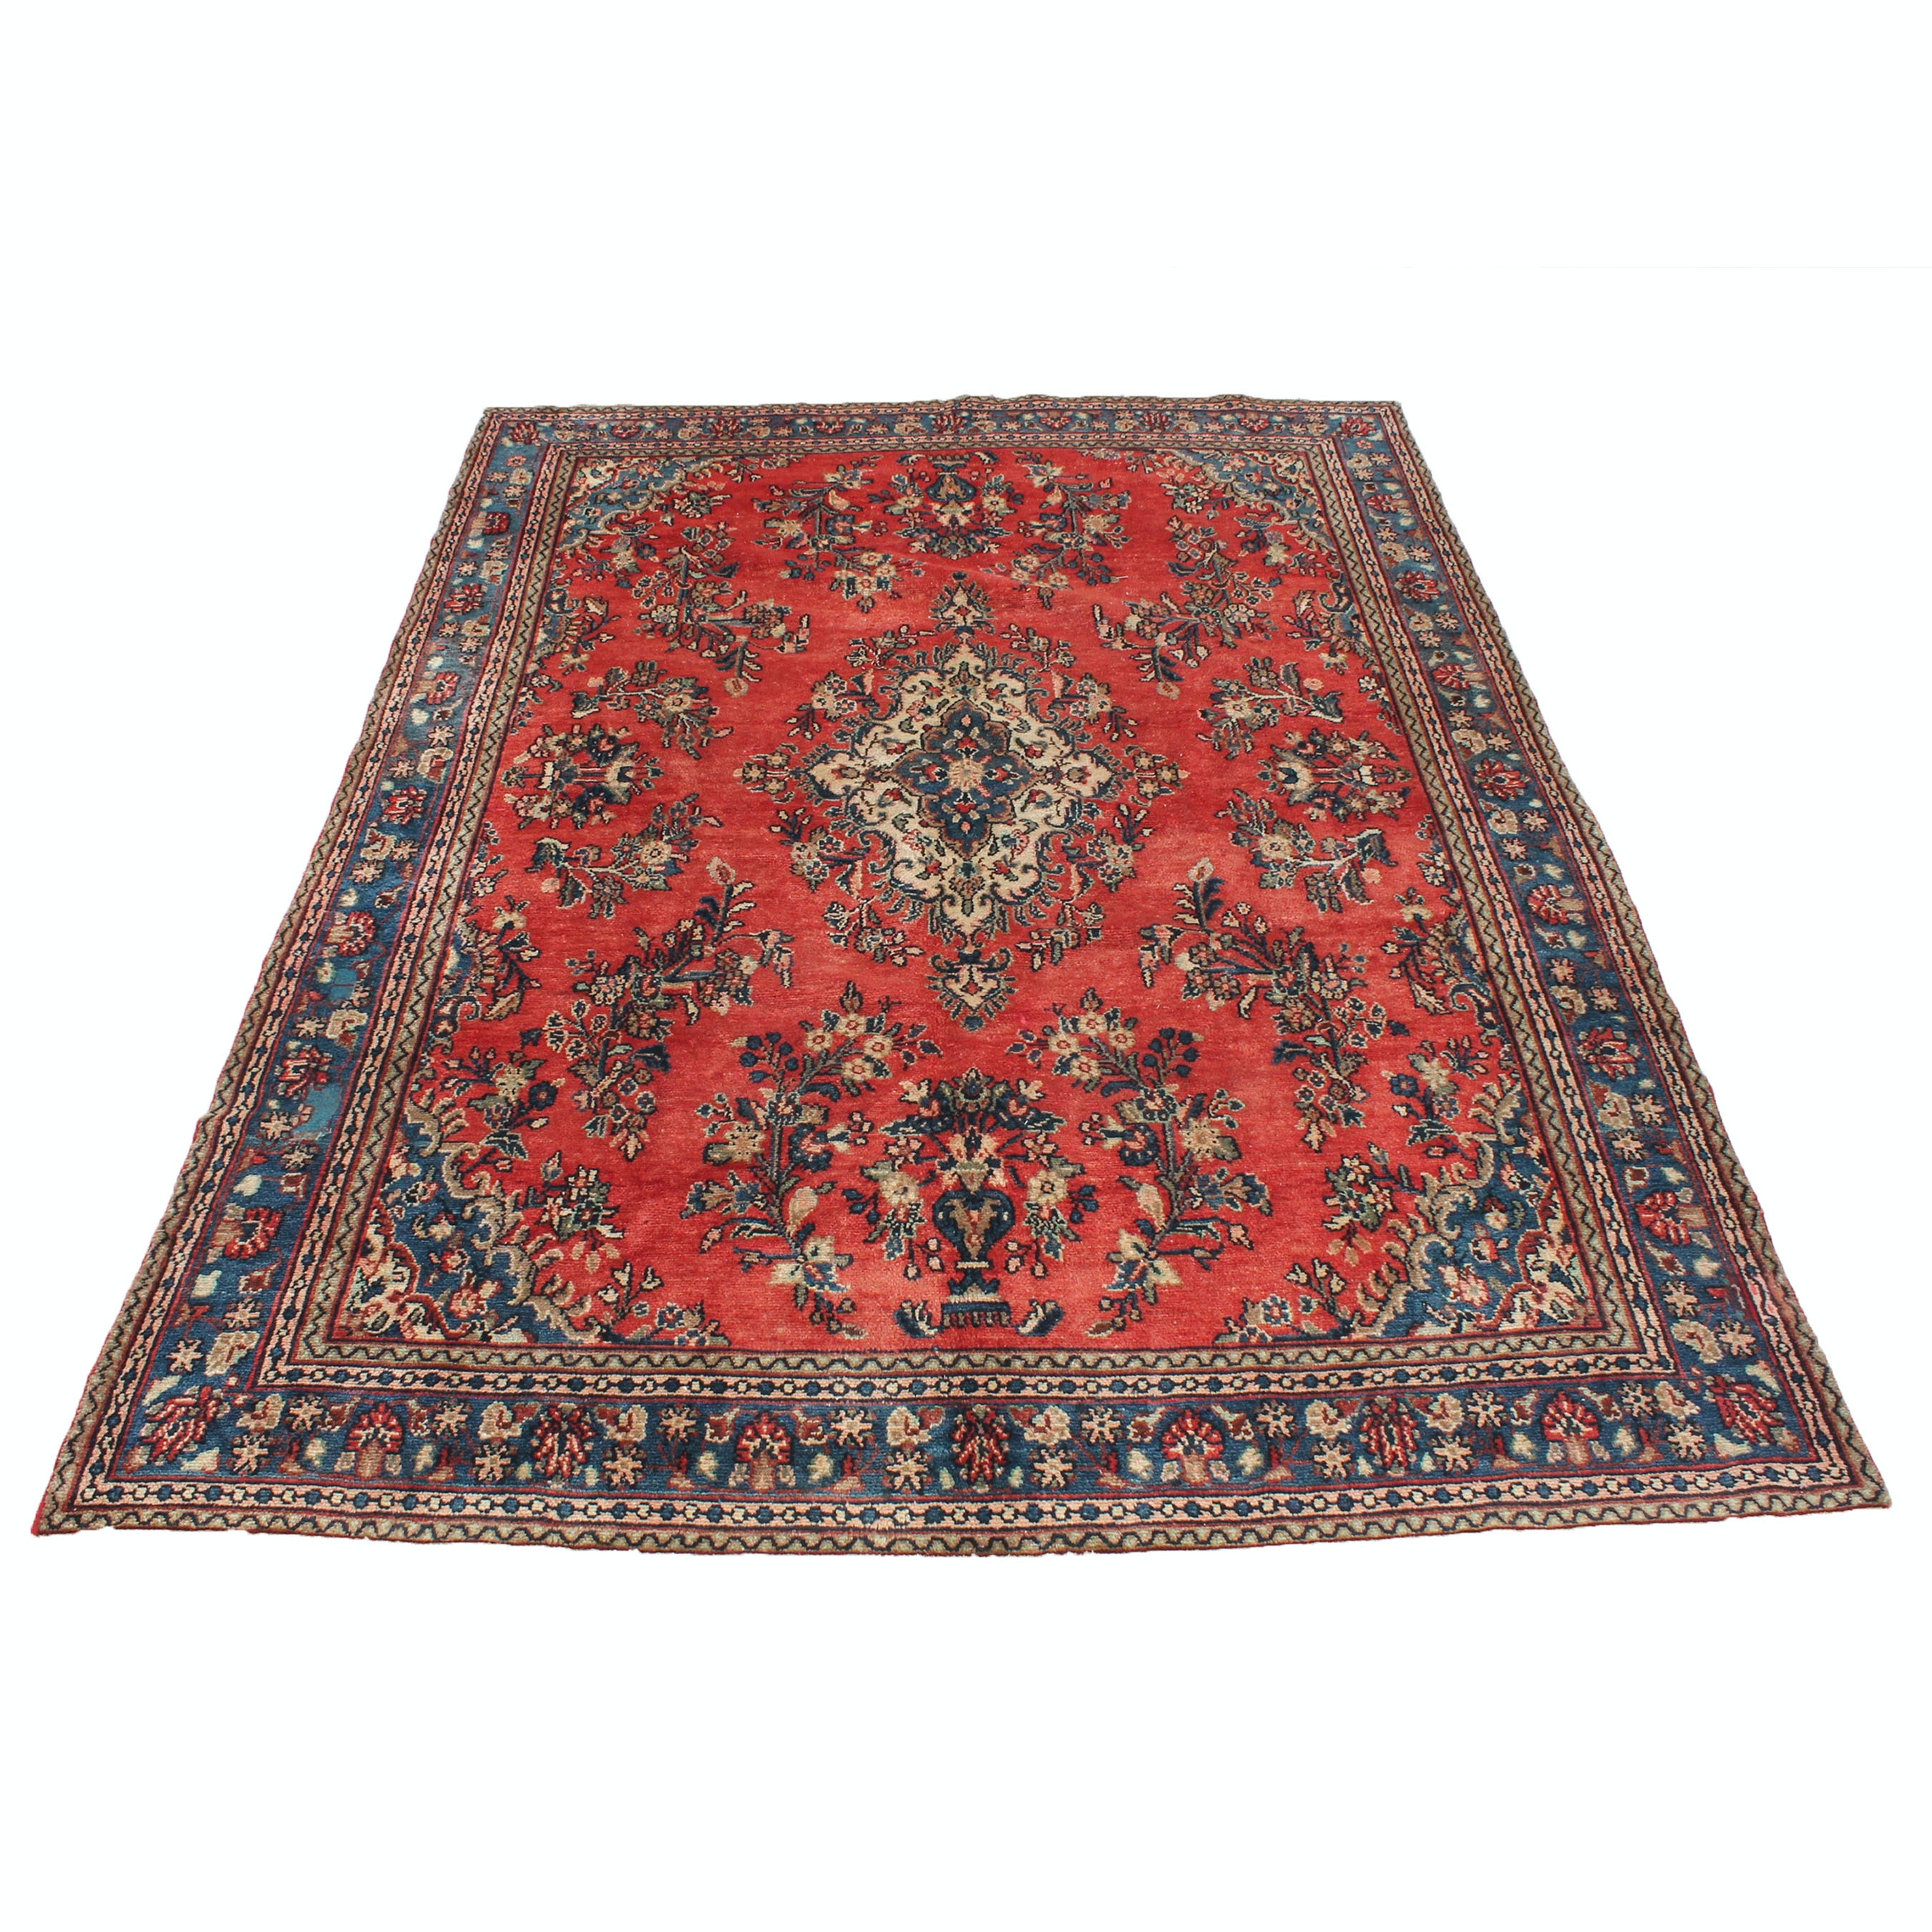 7' x 10' Semi-Antique Hand-Knotted Persian Malayer Sarouk Area Rug